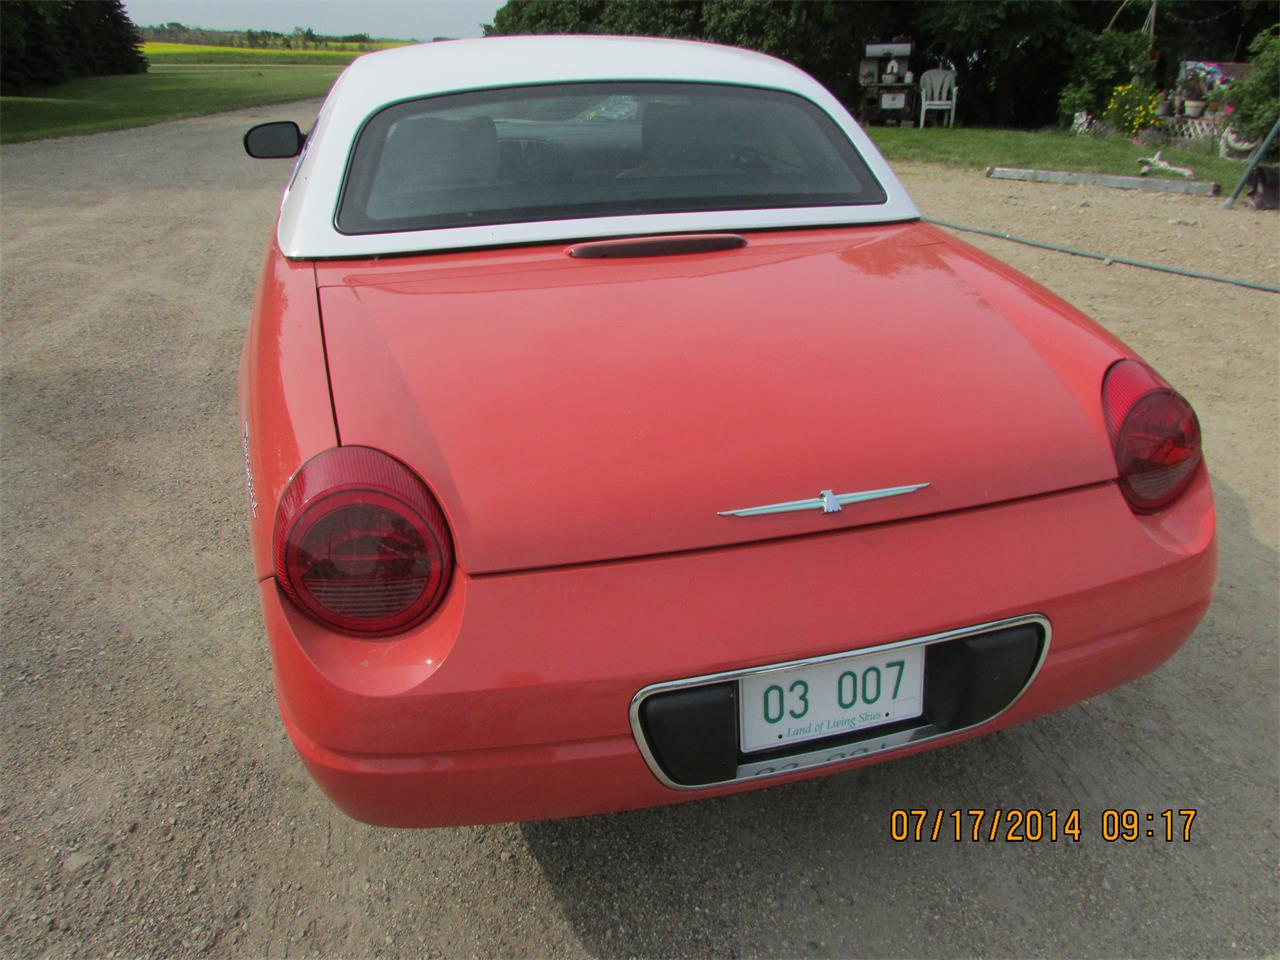 Large Picture of 2003 Thunderbird - $33,000.00 Offered by a Private Seller - NT1X